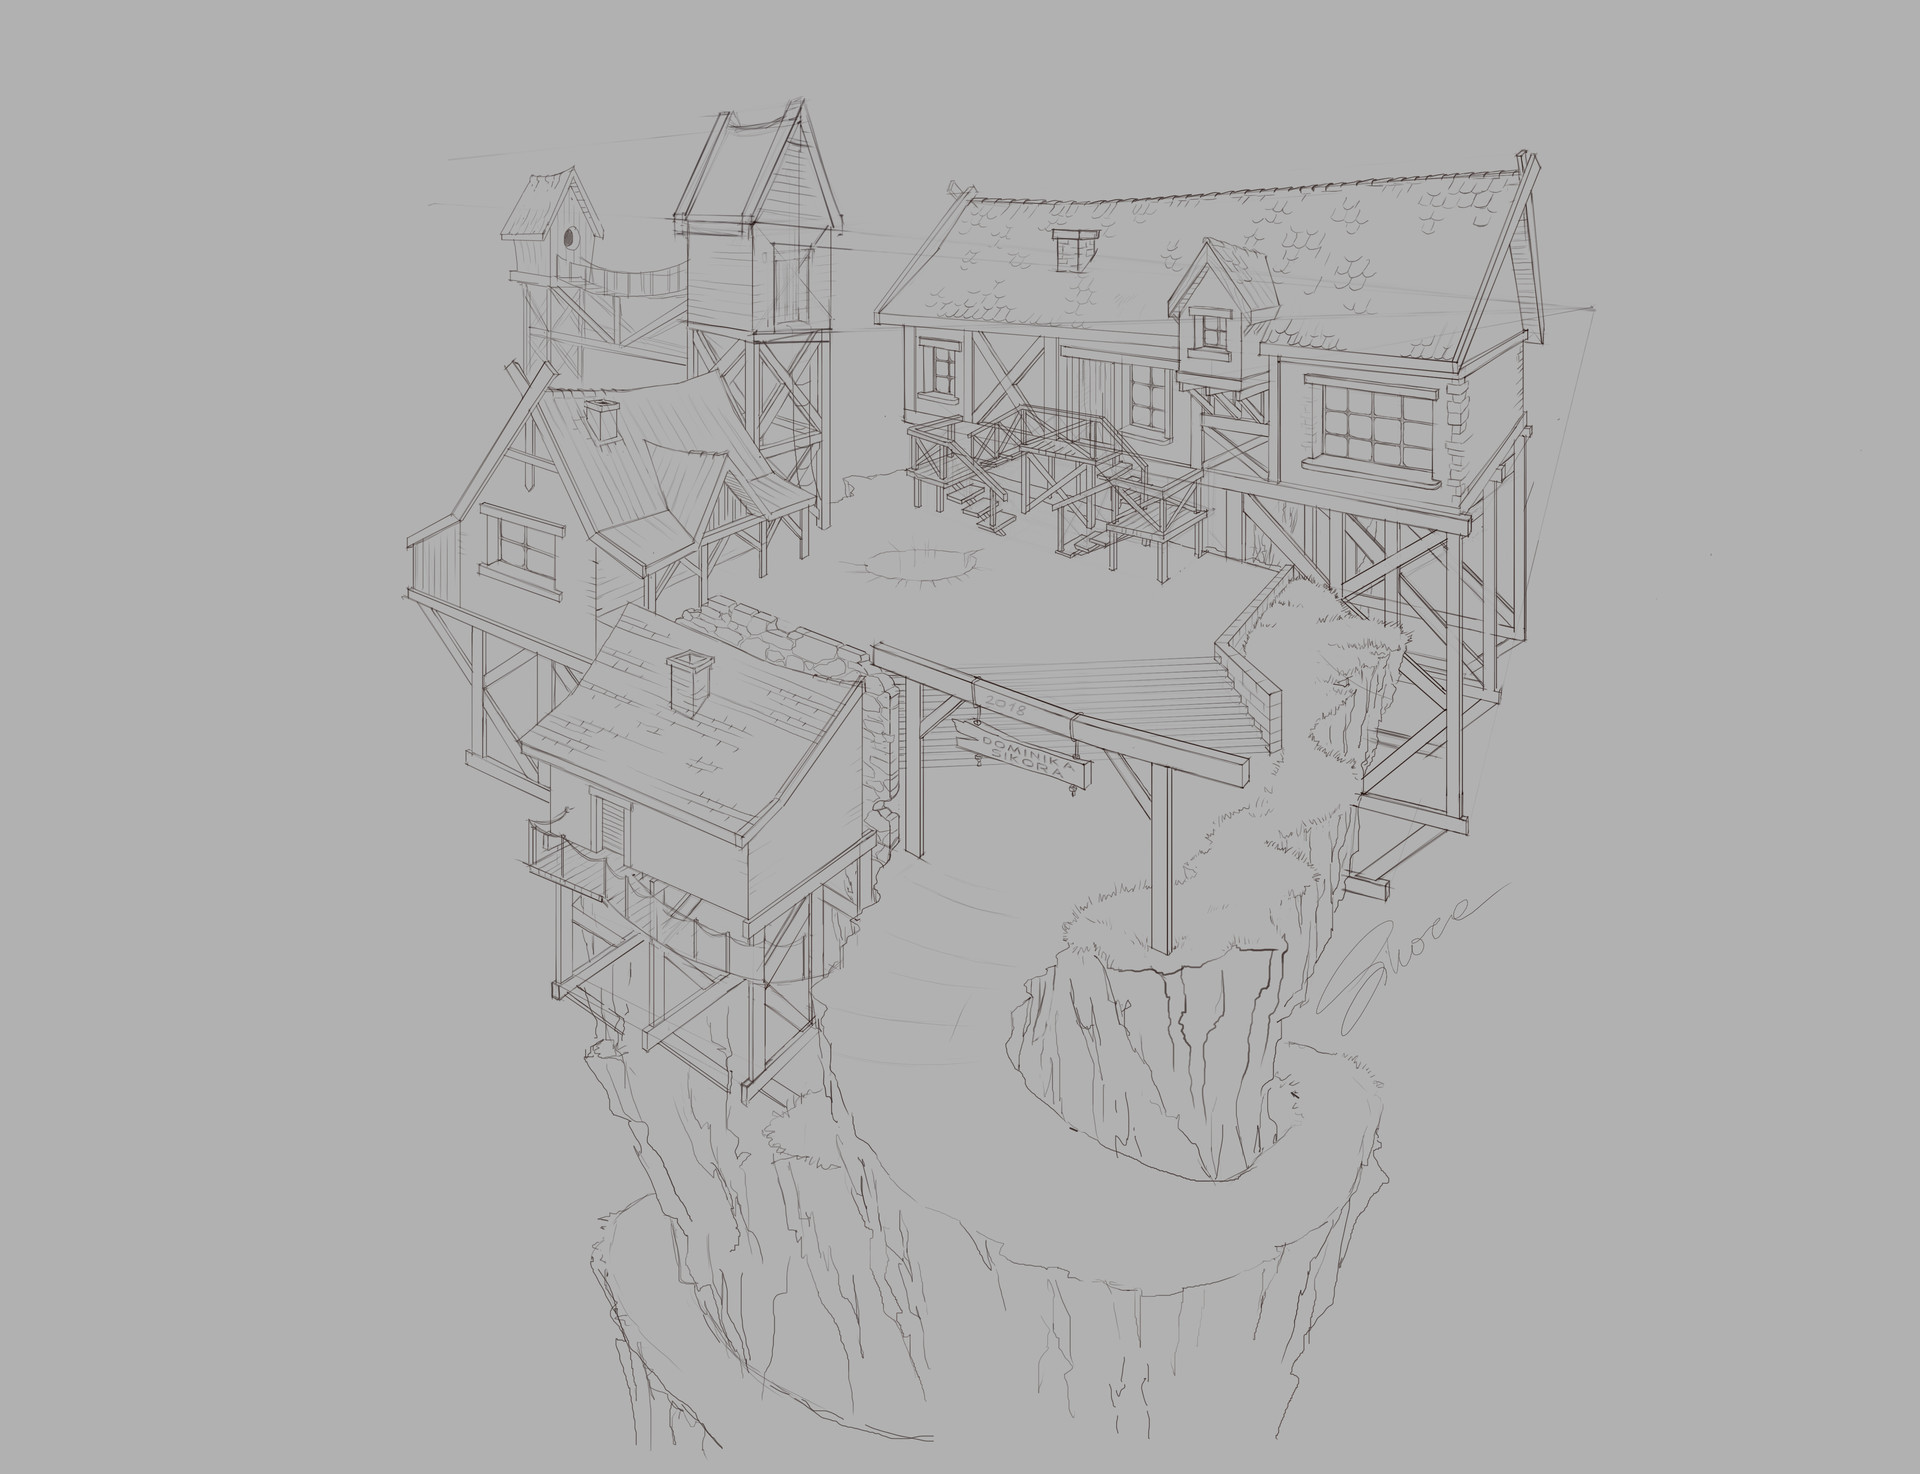 Dominika sikora village environment concept